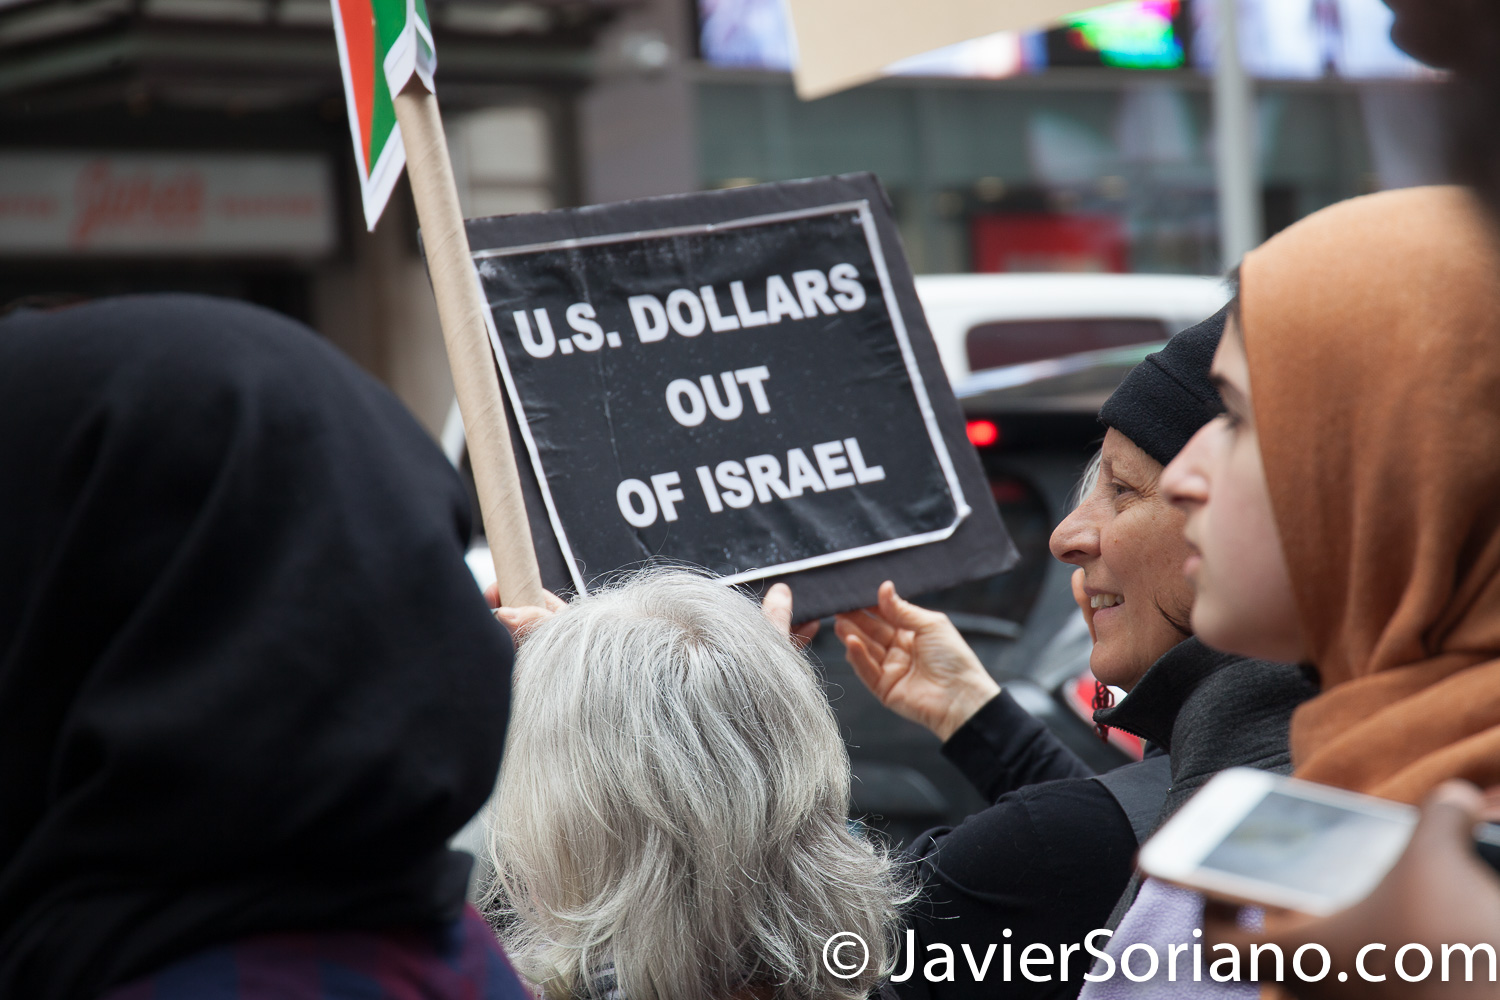 5/18/2018. New York City - Supporters of Palestine in Times Square. Photo by Javier Soriano/www.JavierSoriano.com